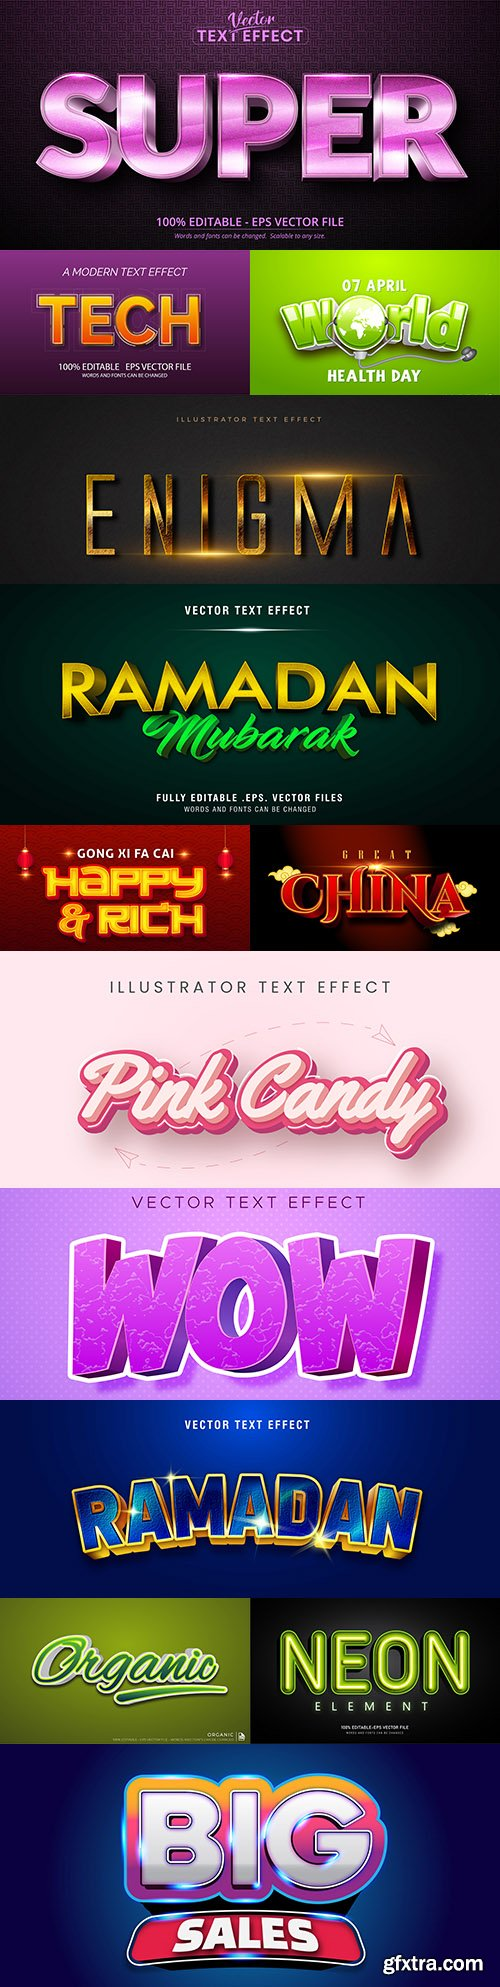 Editable font and 3d effect text design collection illustration 19